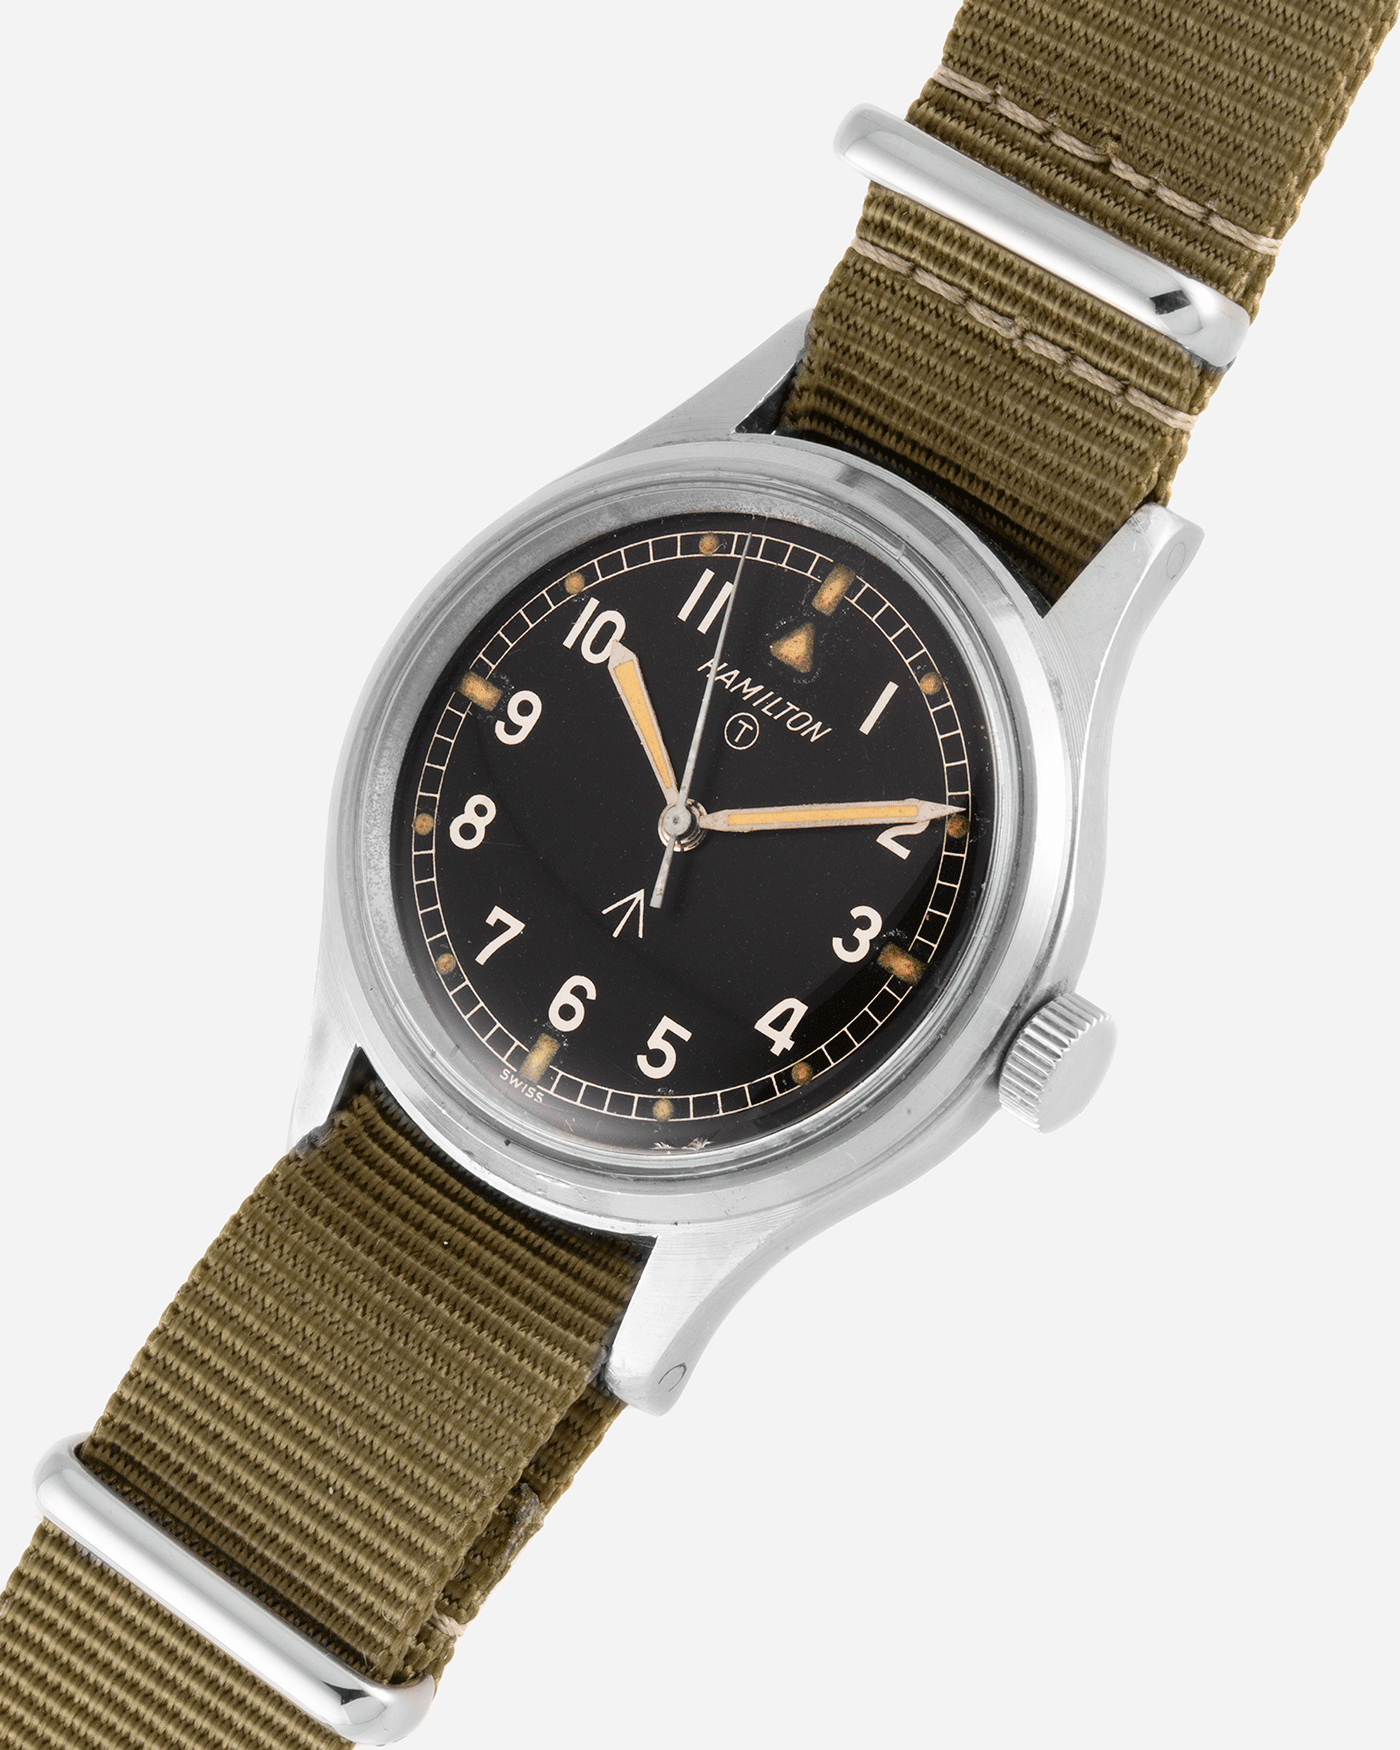 Hamilton 6B RAF Vintage Military Watch | S.Song Vintage Watches  For Sale